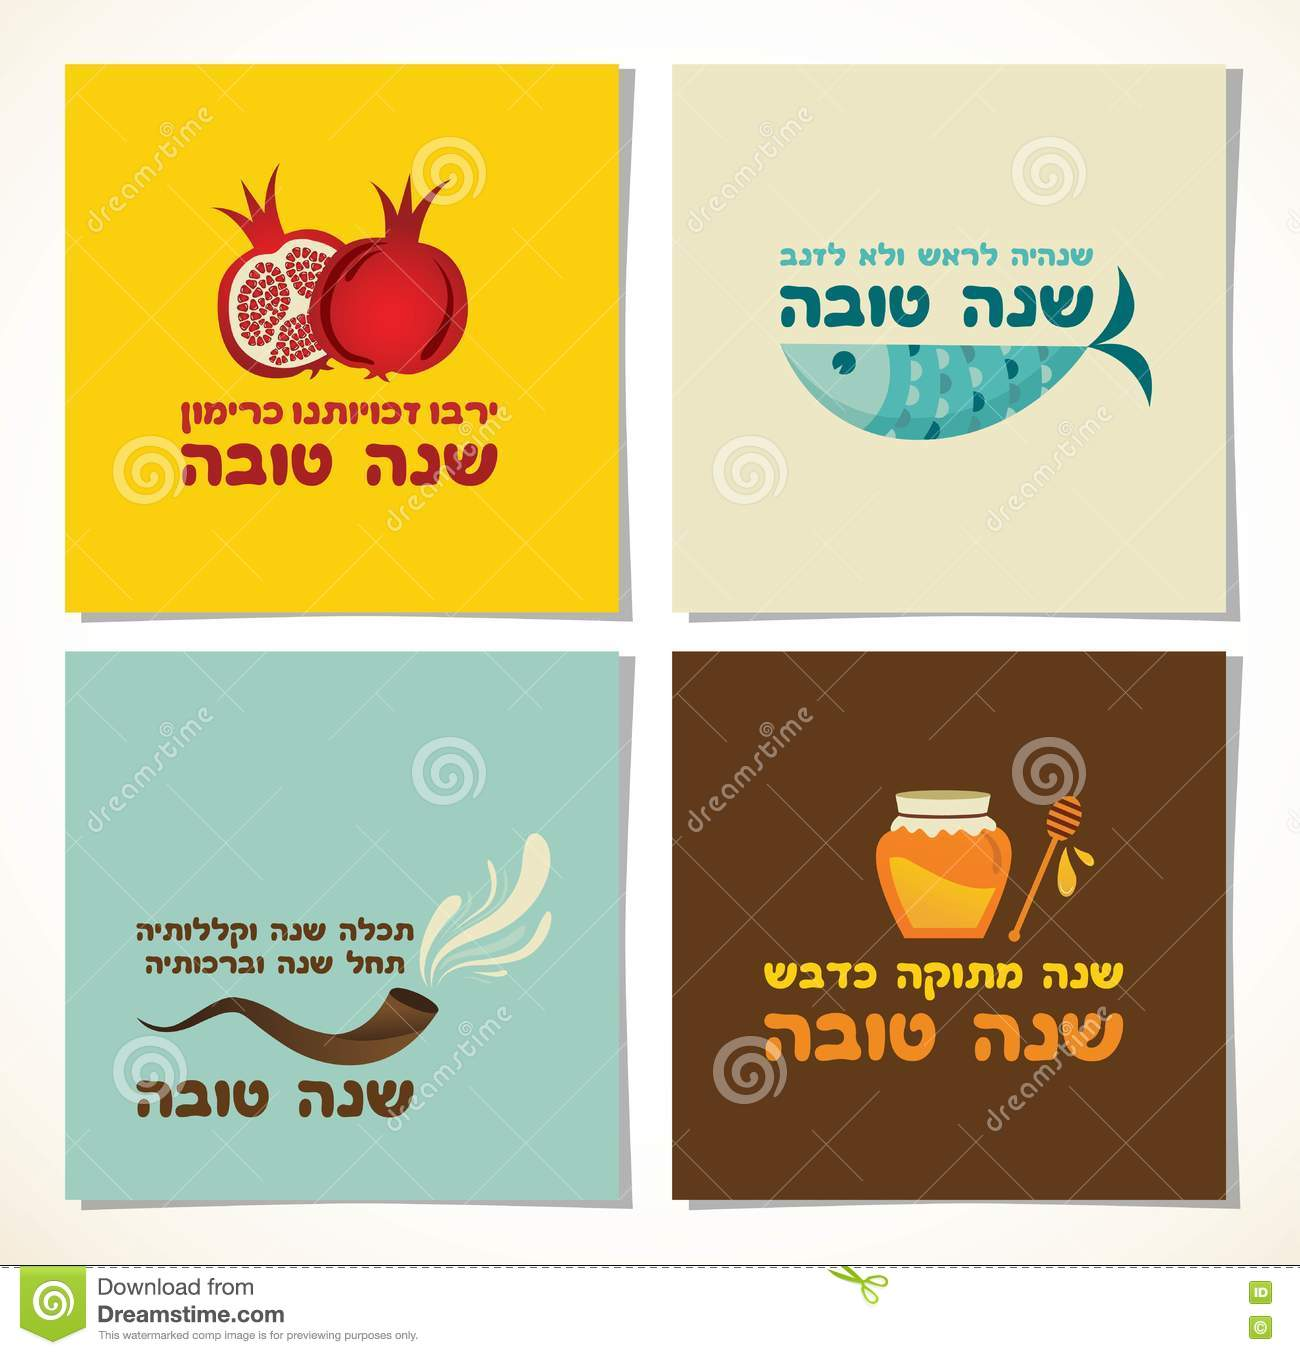 Set of rosh hashana greeting cards with traditional proverbs and set of rosh hashana greeting cards with traditional proverbs and greetings m4hsunfo